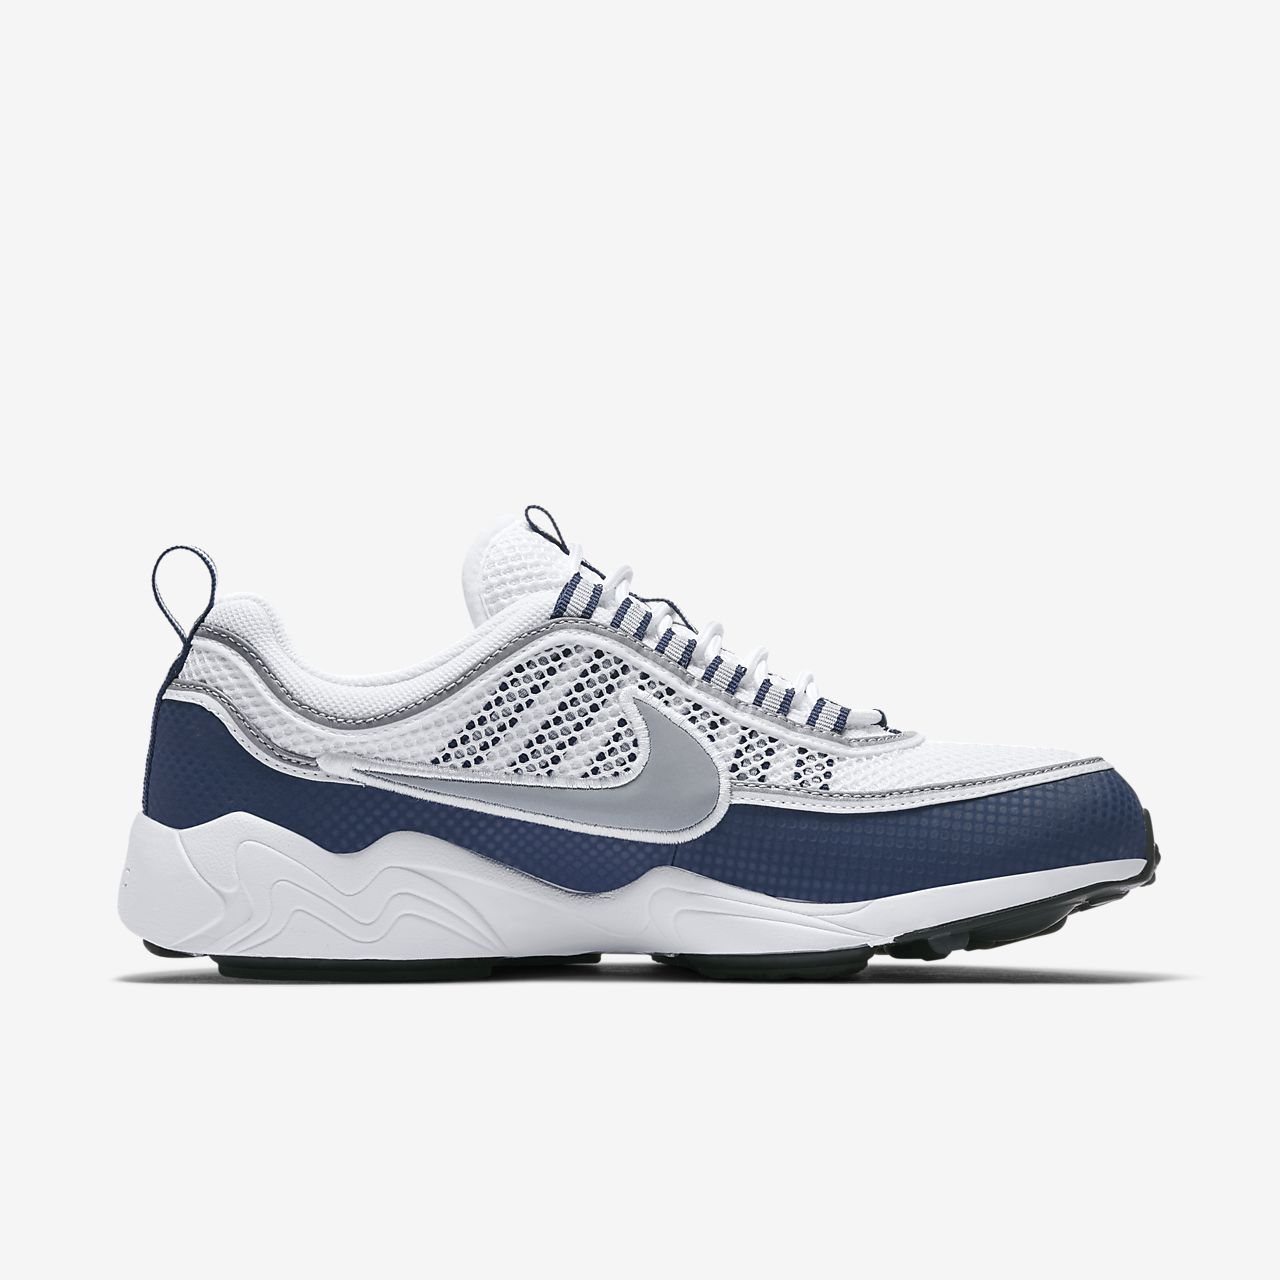 Chaussures Nike Zoom Spiridon homme ToMet